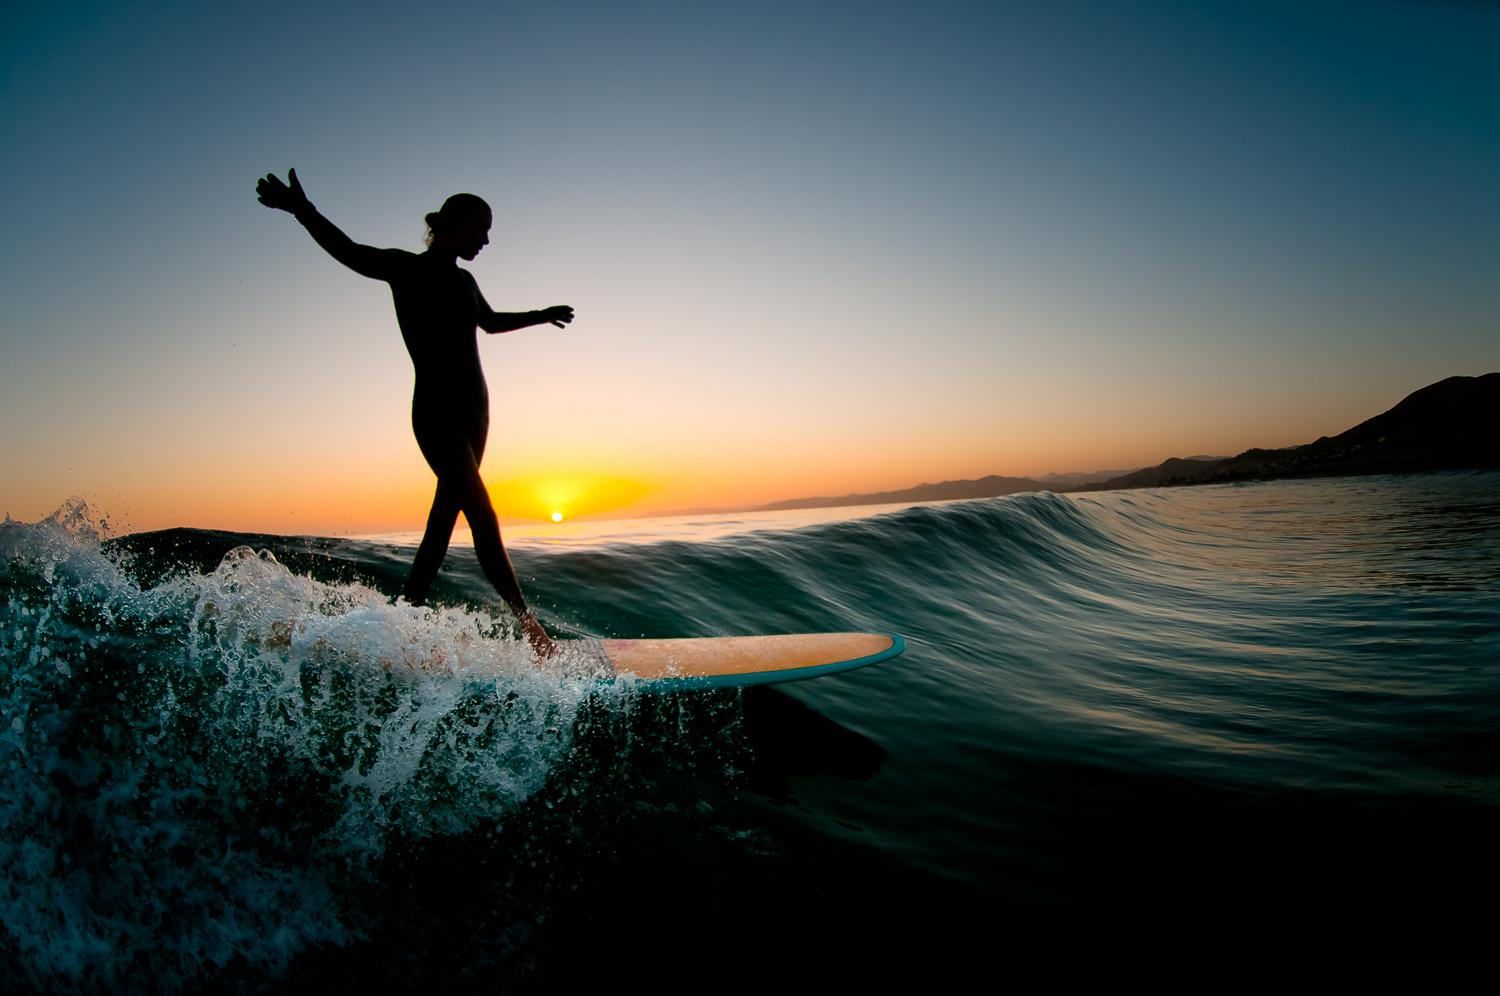 Crystal Thornburg catches a wave in the Big Sur surf in surfing photos from Central California silhouette pose sunset